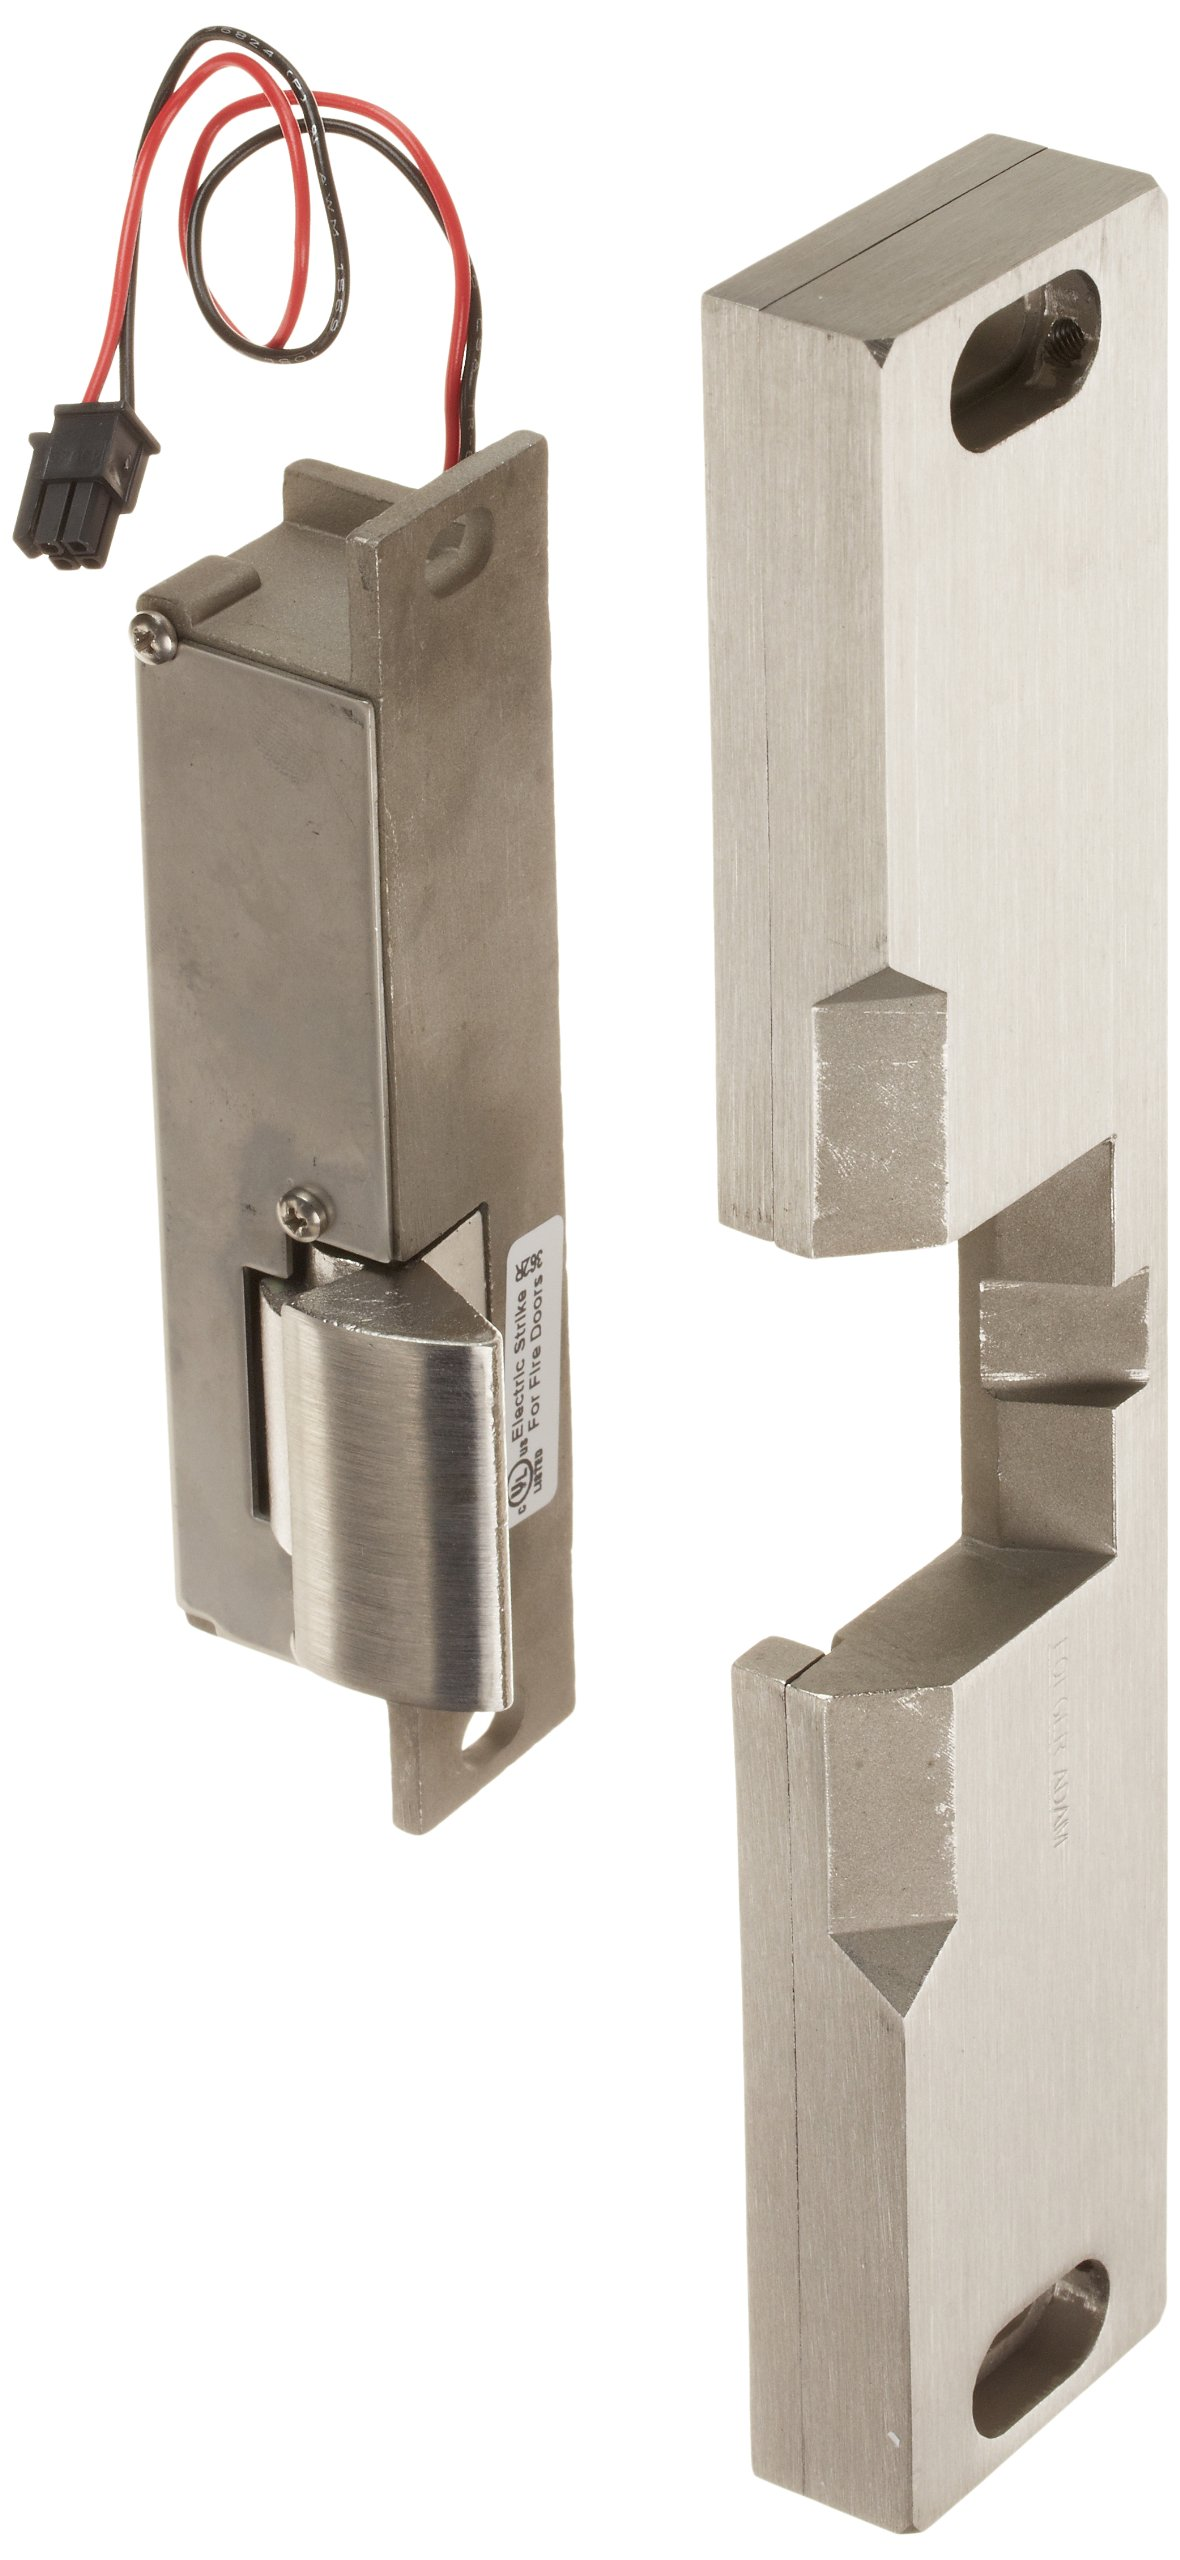 HES 18103729 310 4 Folger Adam Electric Strikes, Grade 1, Fail Secure, Satin Stainless Steel